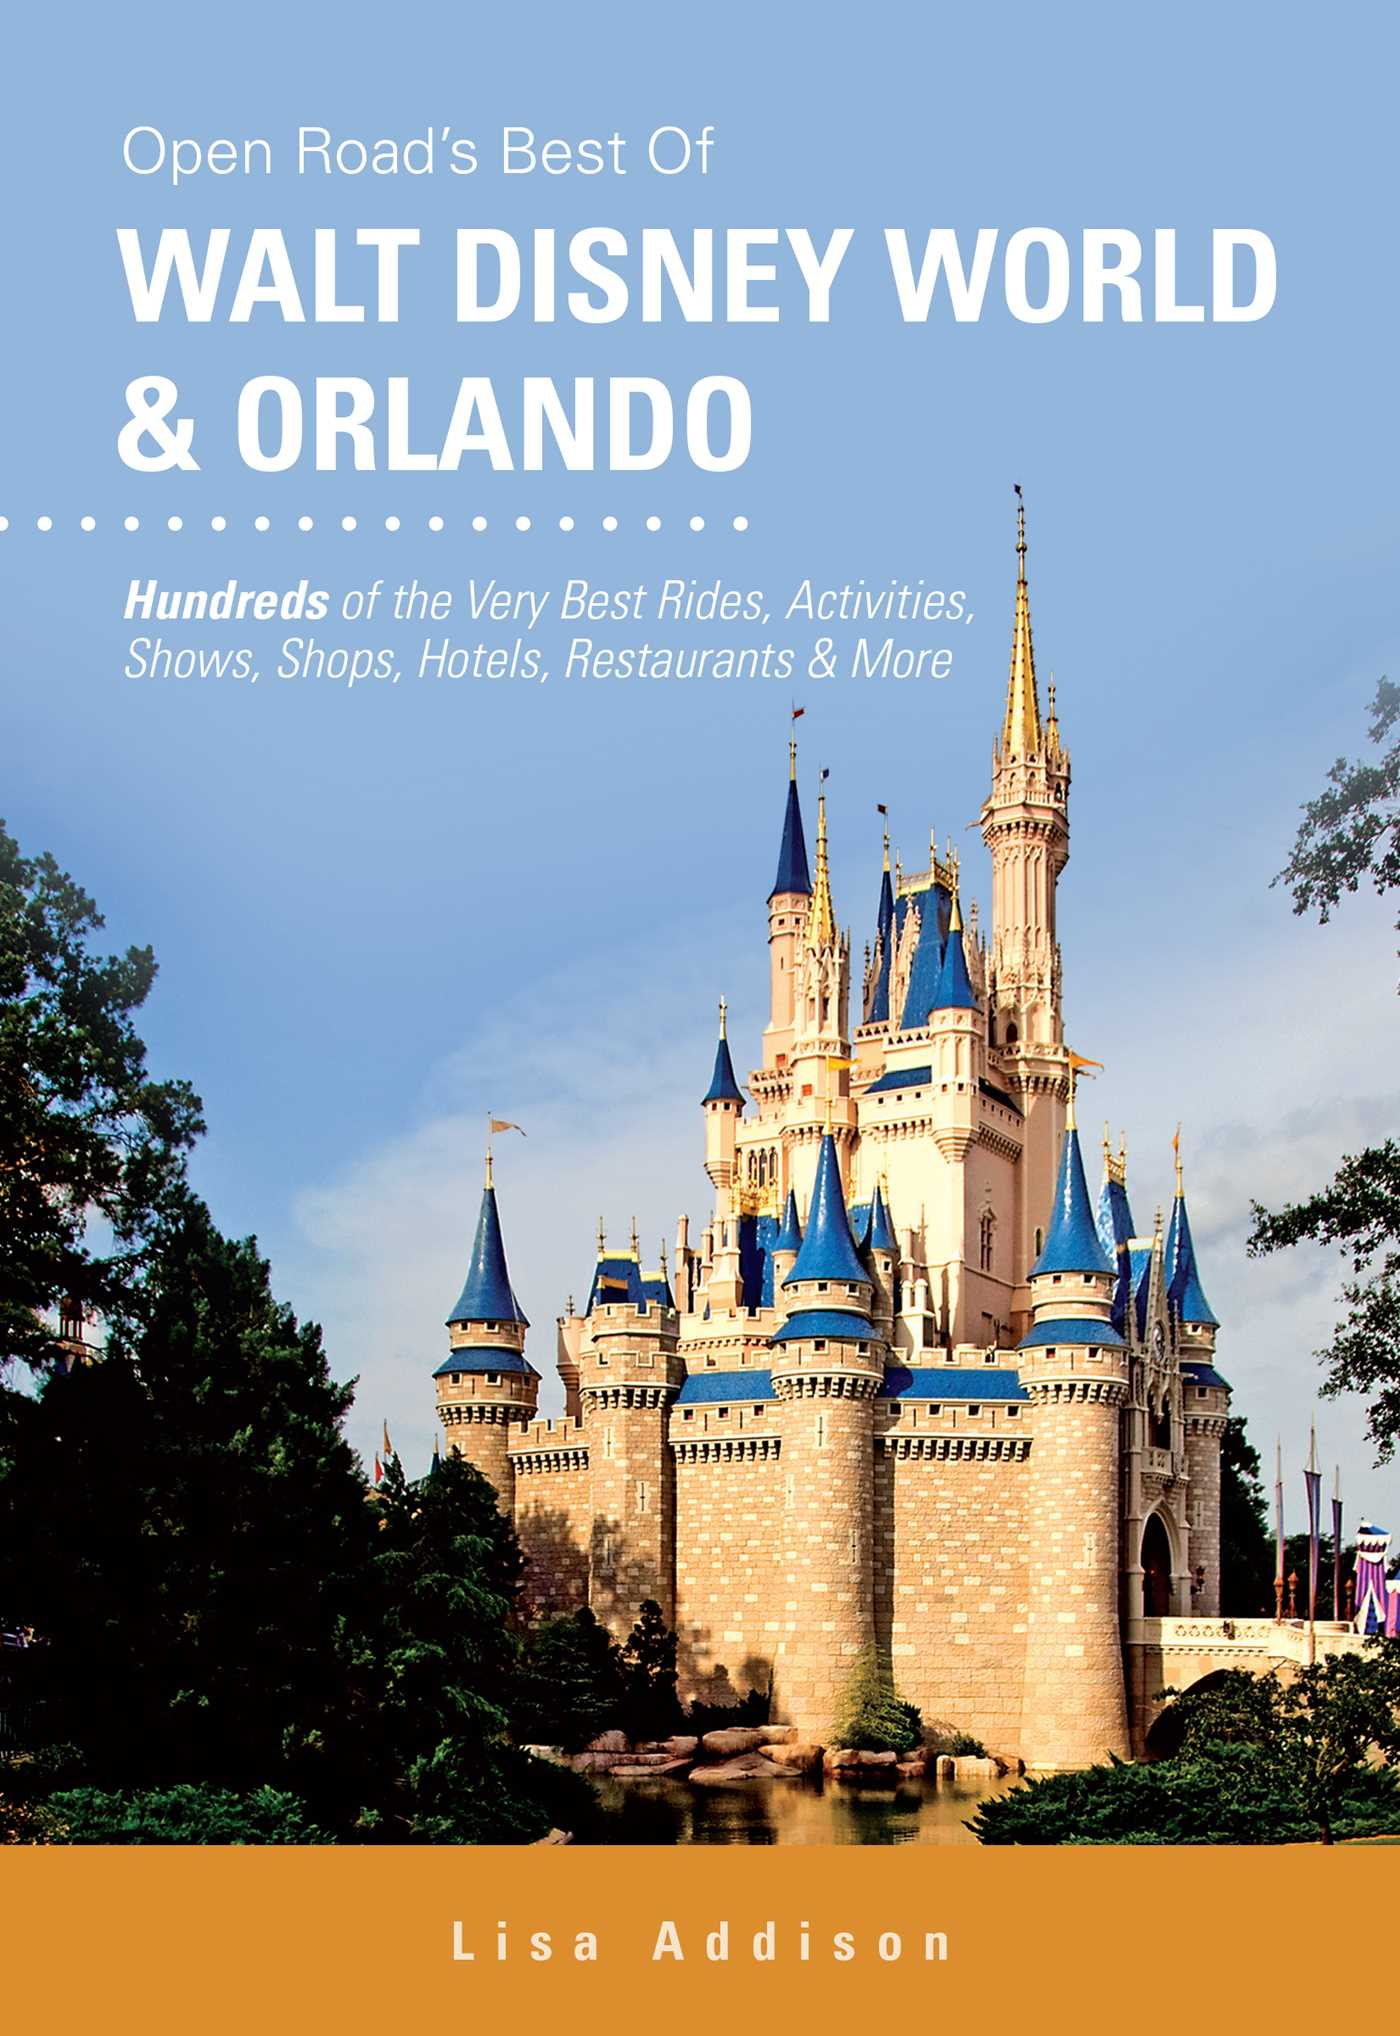 Open roads best of walt disney world orlando 9781593602062 hr